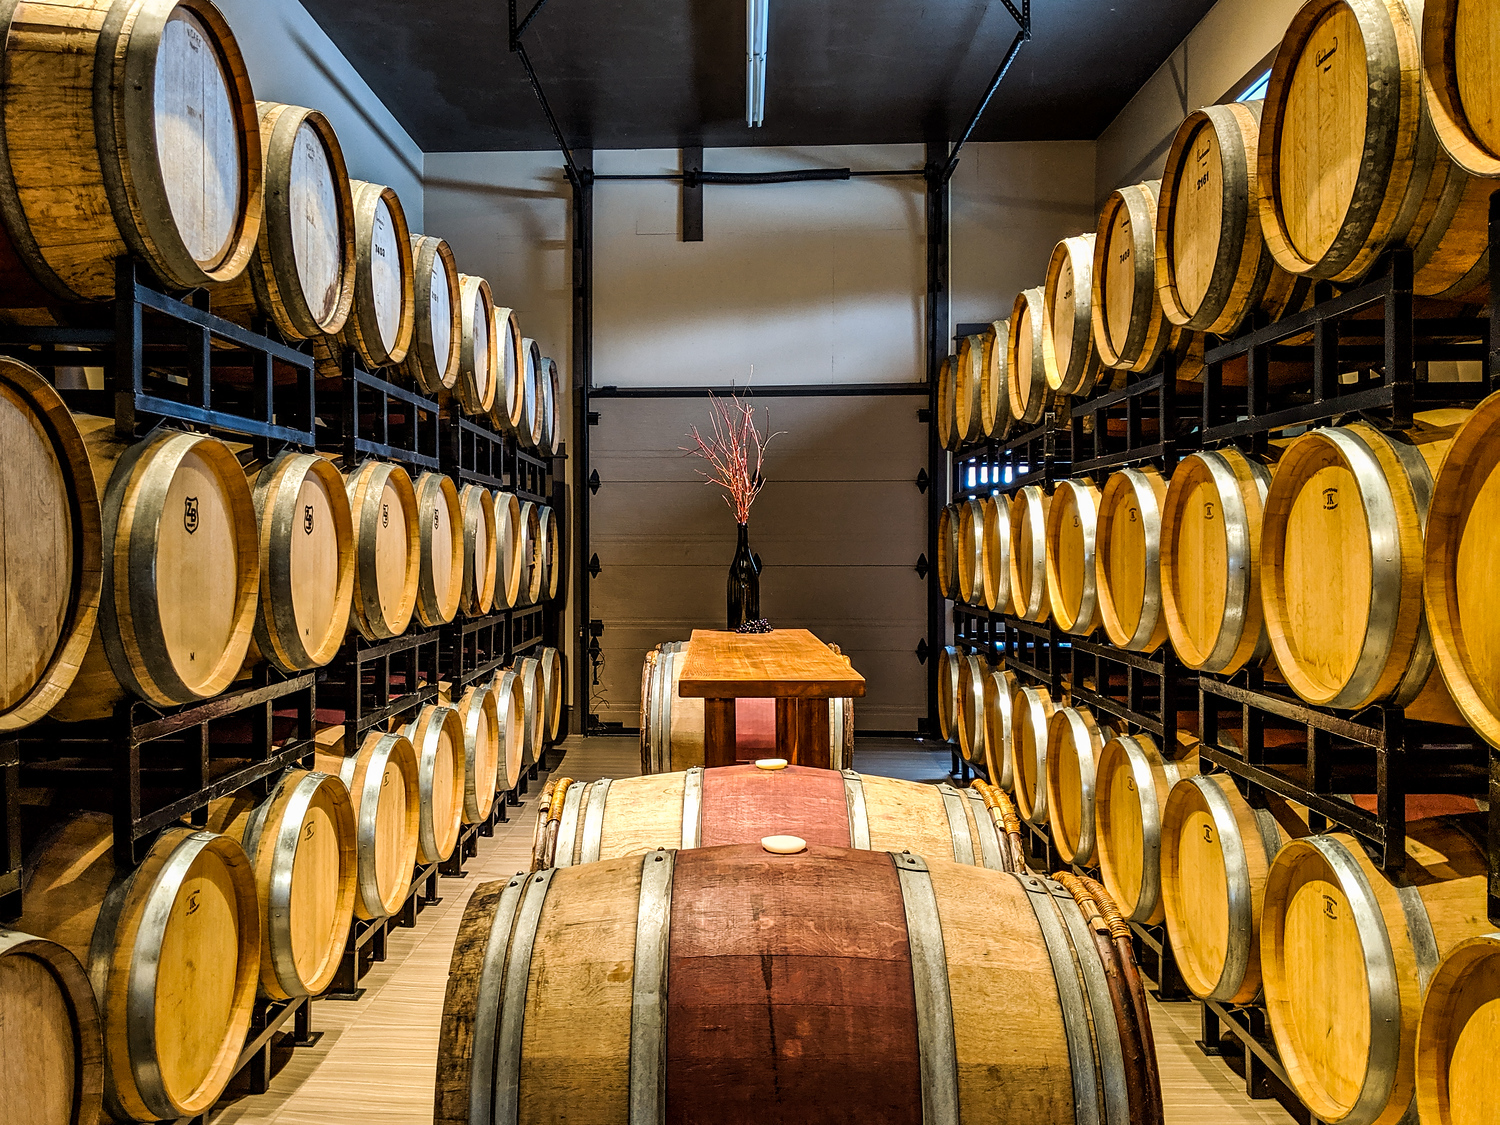 Wine barrels at Gaspereau Vineyard, one of the stops on the Magic Winery Bus